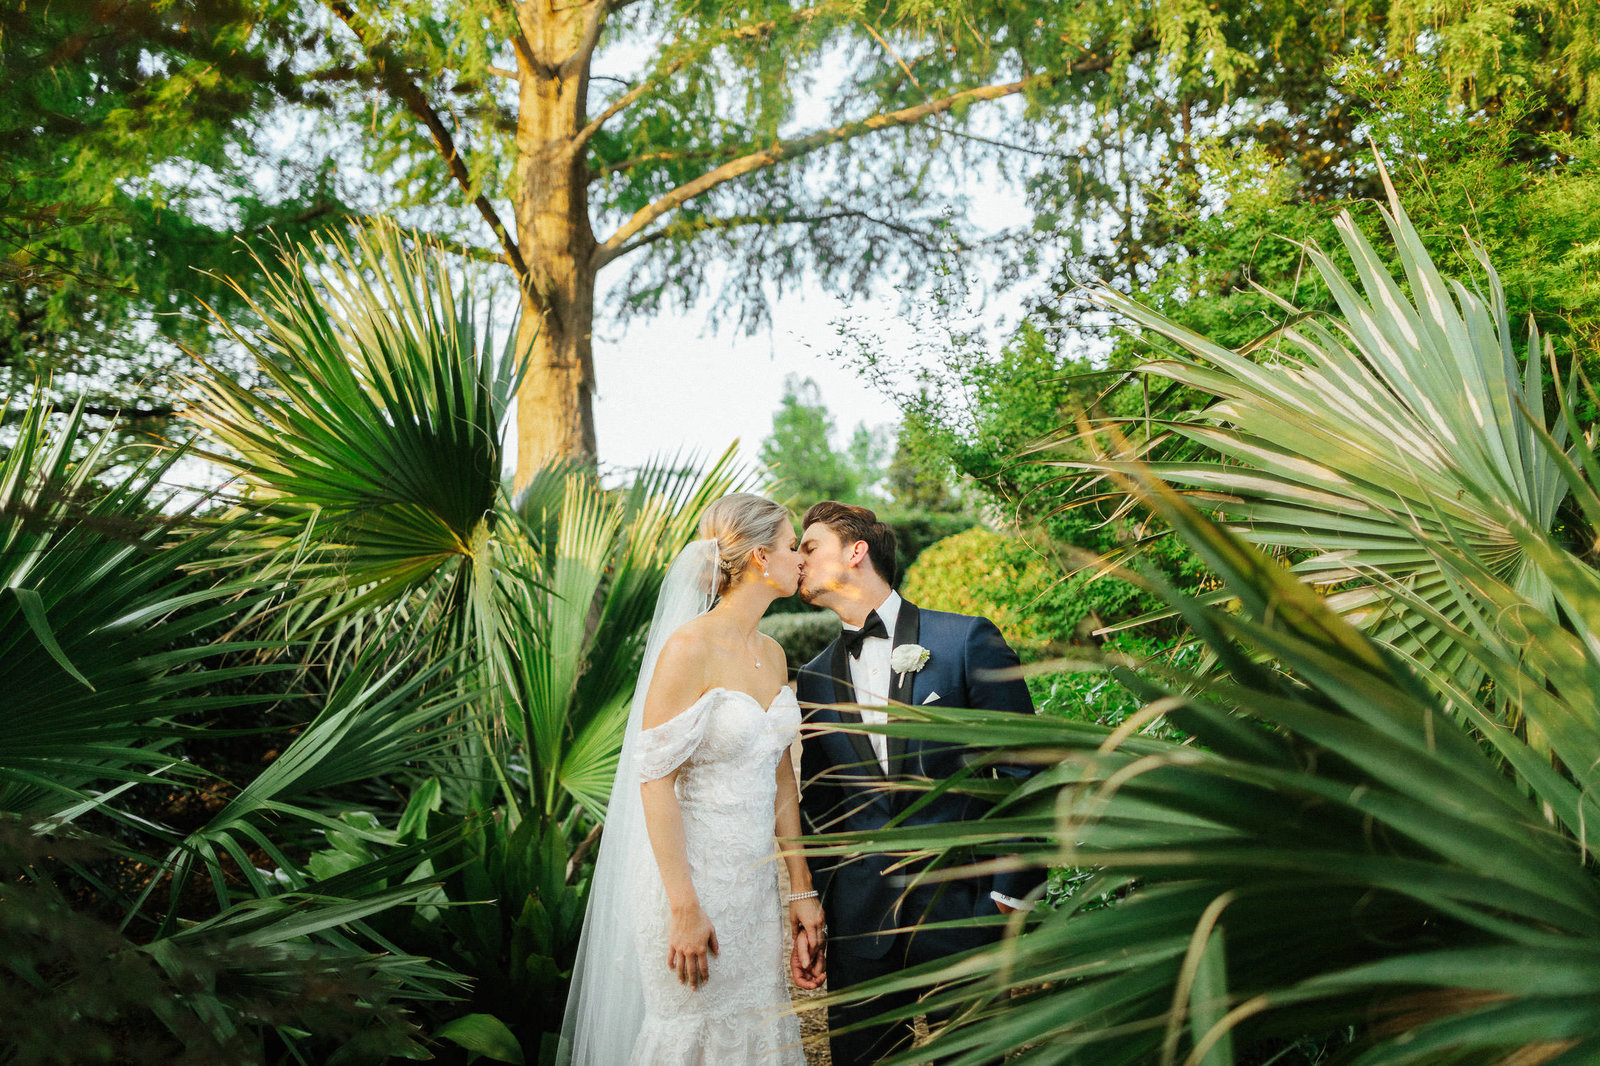 Jeff-Brummett-Visuals-charleston-Wedding-photographer (553 of 1)